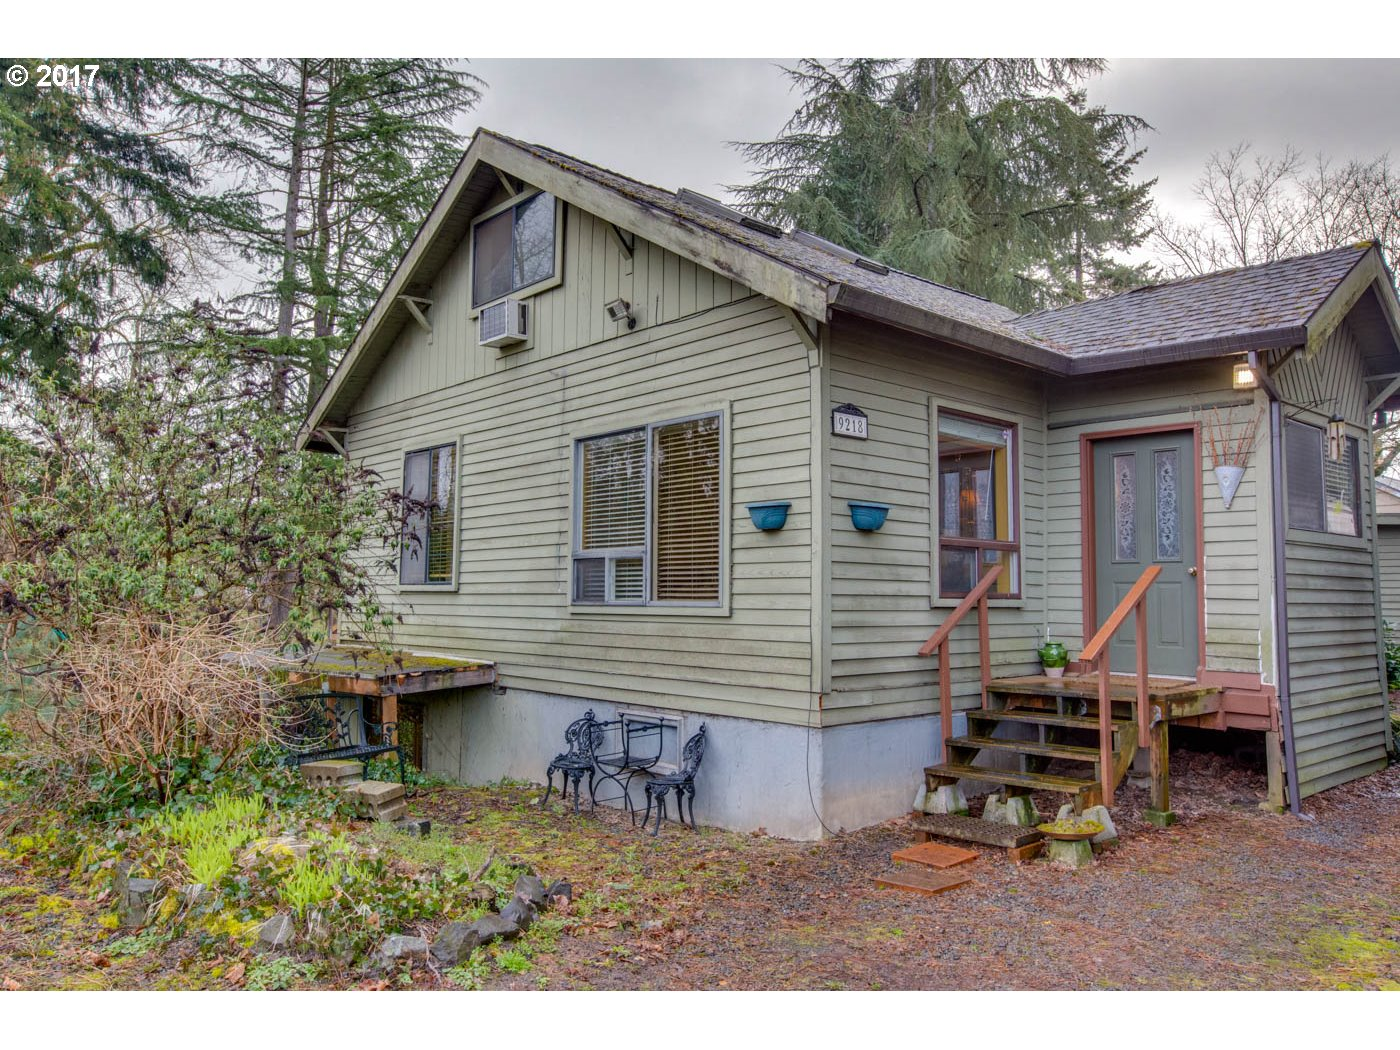 2207 sq. ft 3 bedrooms 2 bathrooms  House For Sale, Portland, OR